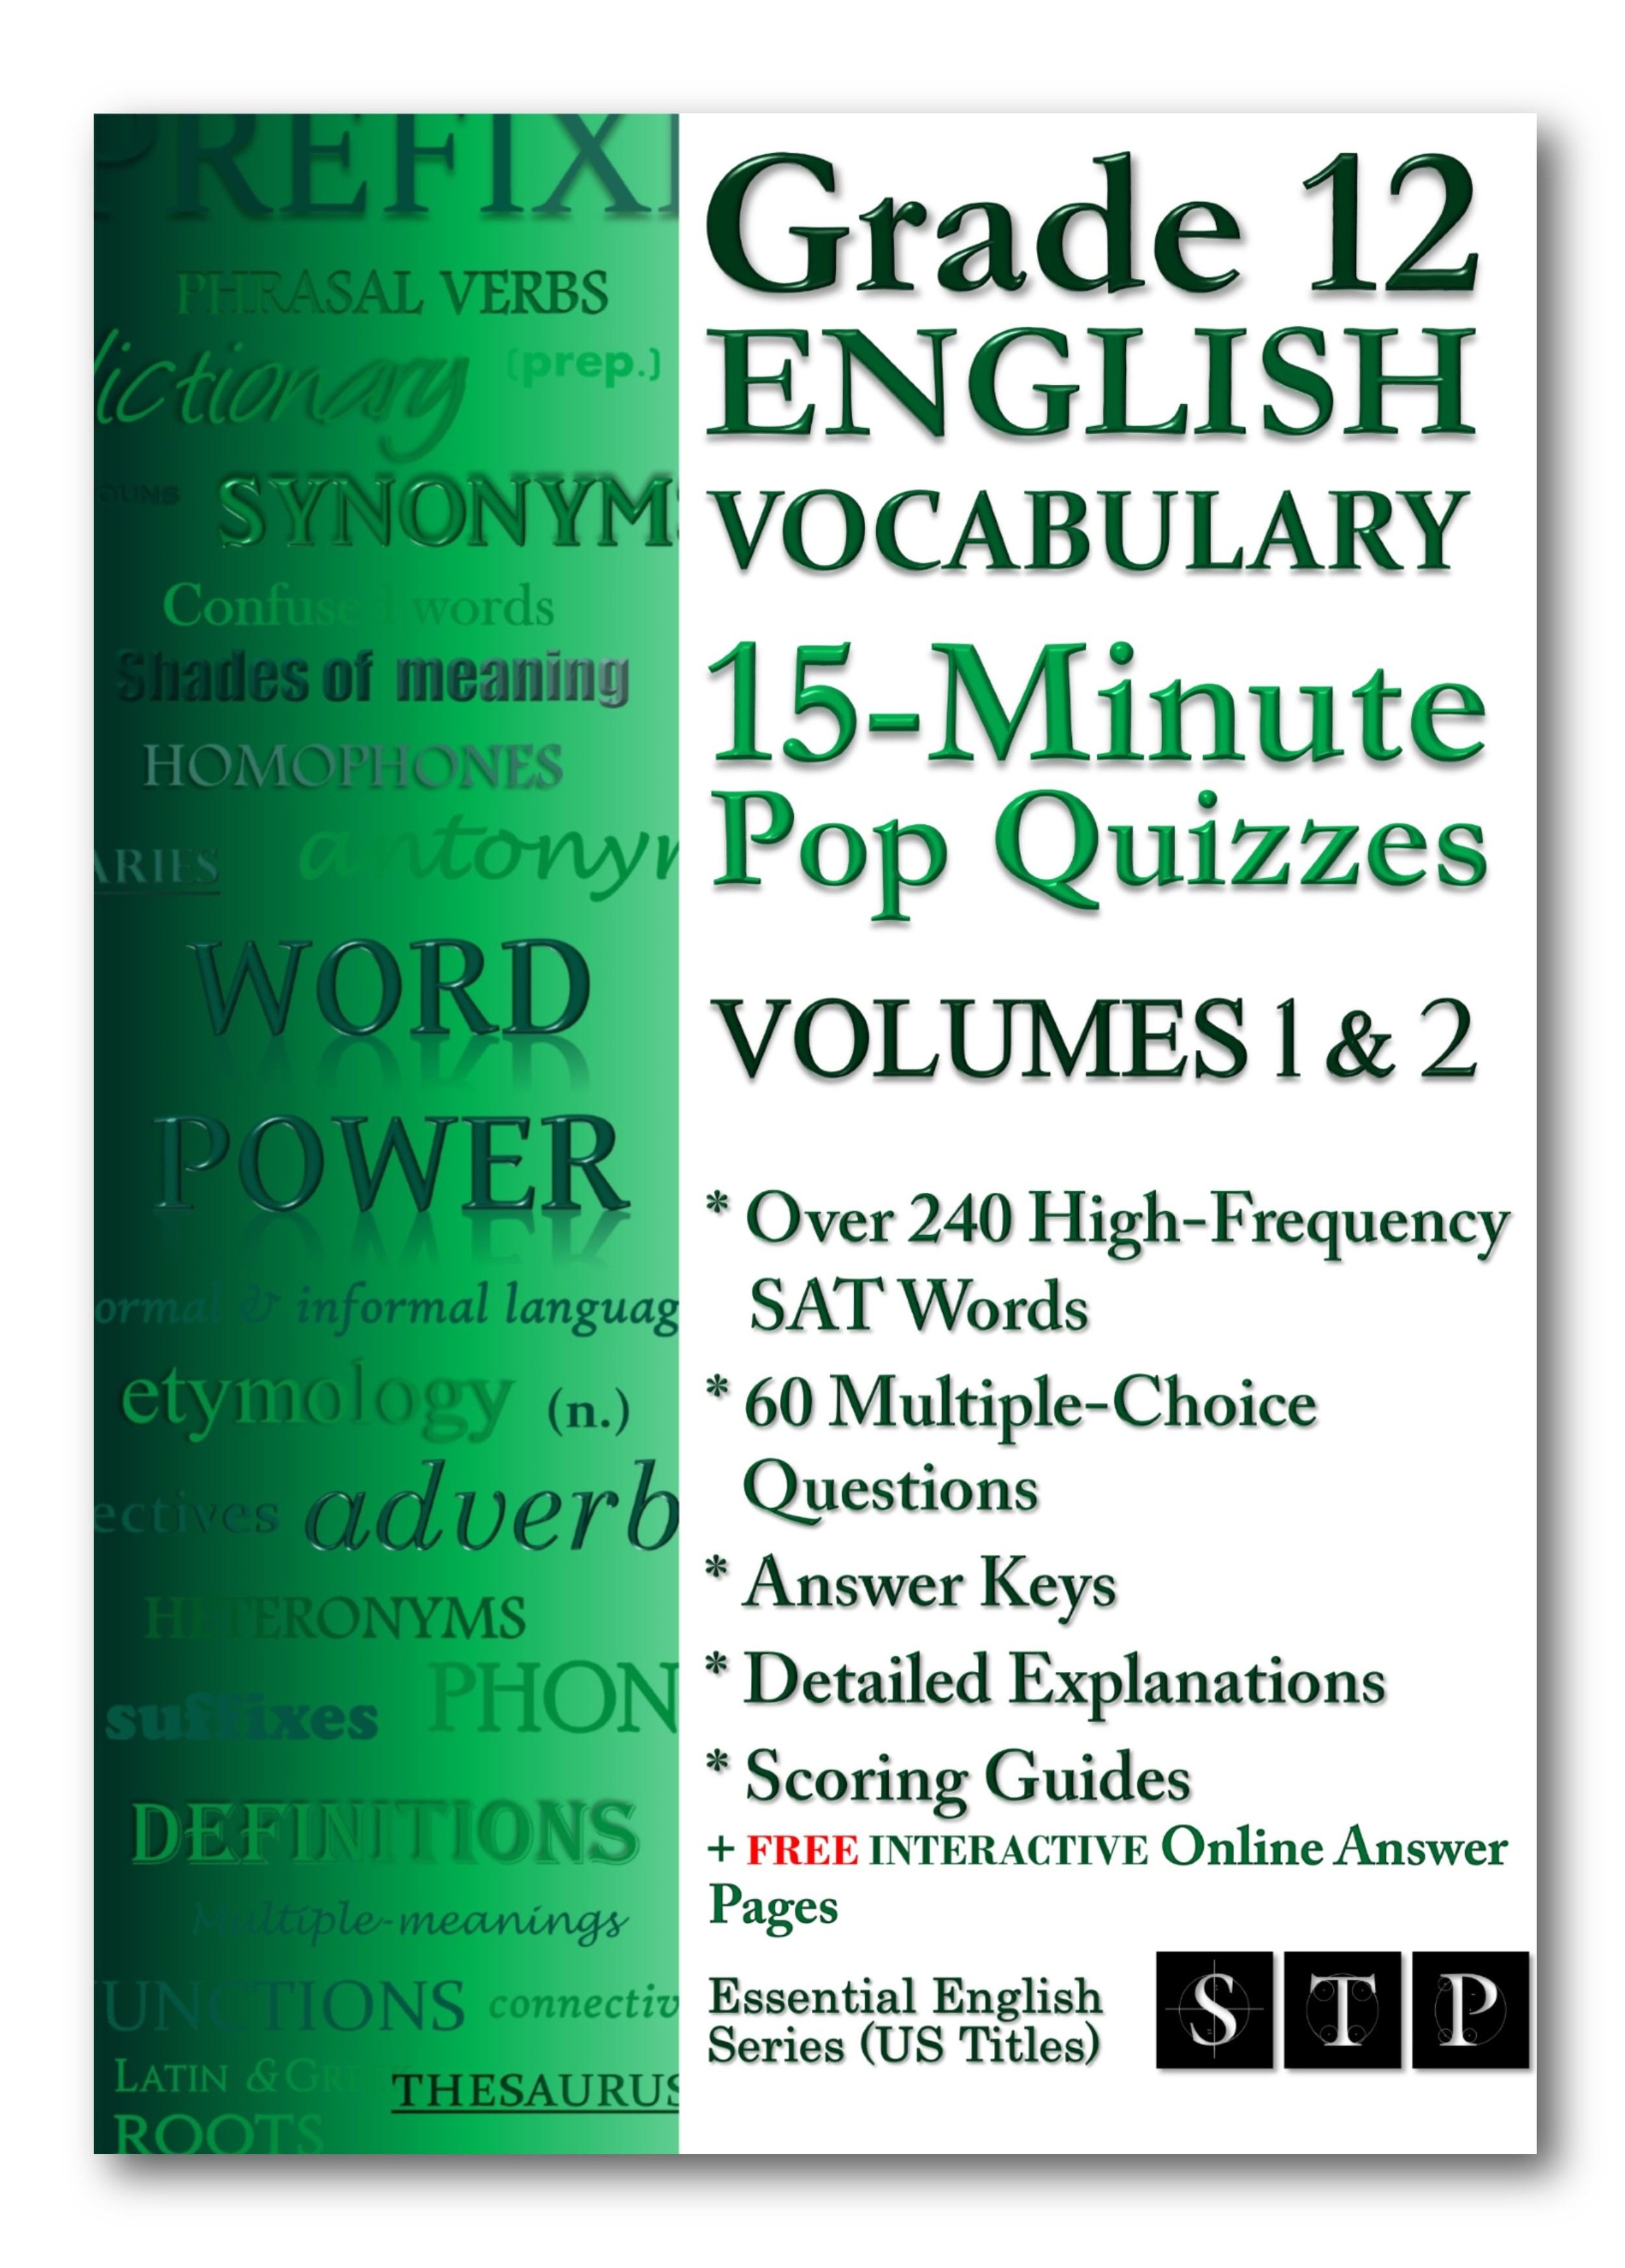 Grade 12 English Vocabulary 15-Minute Pop Quizzes Volumes 1 & 2